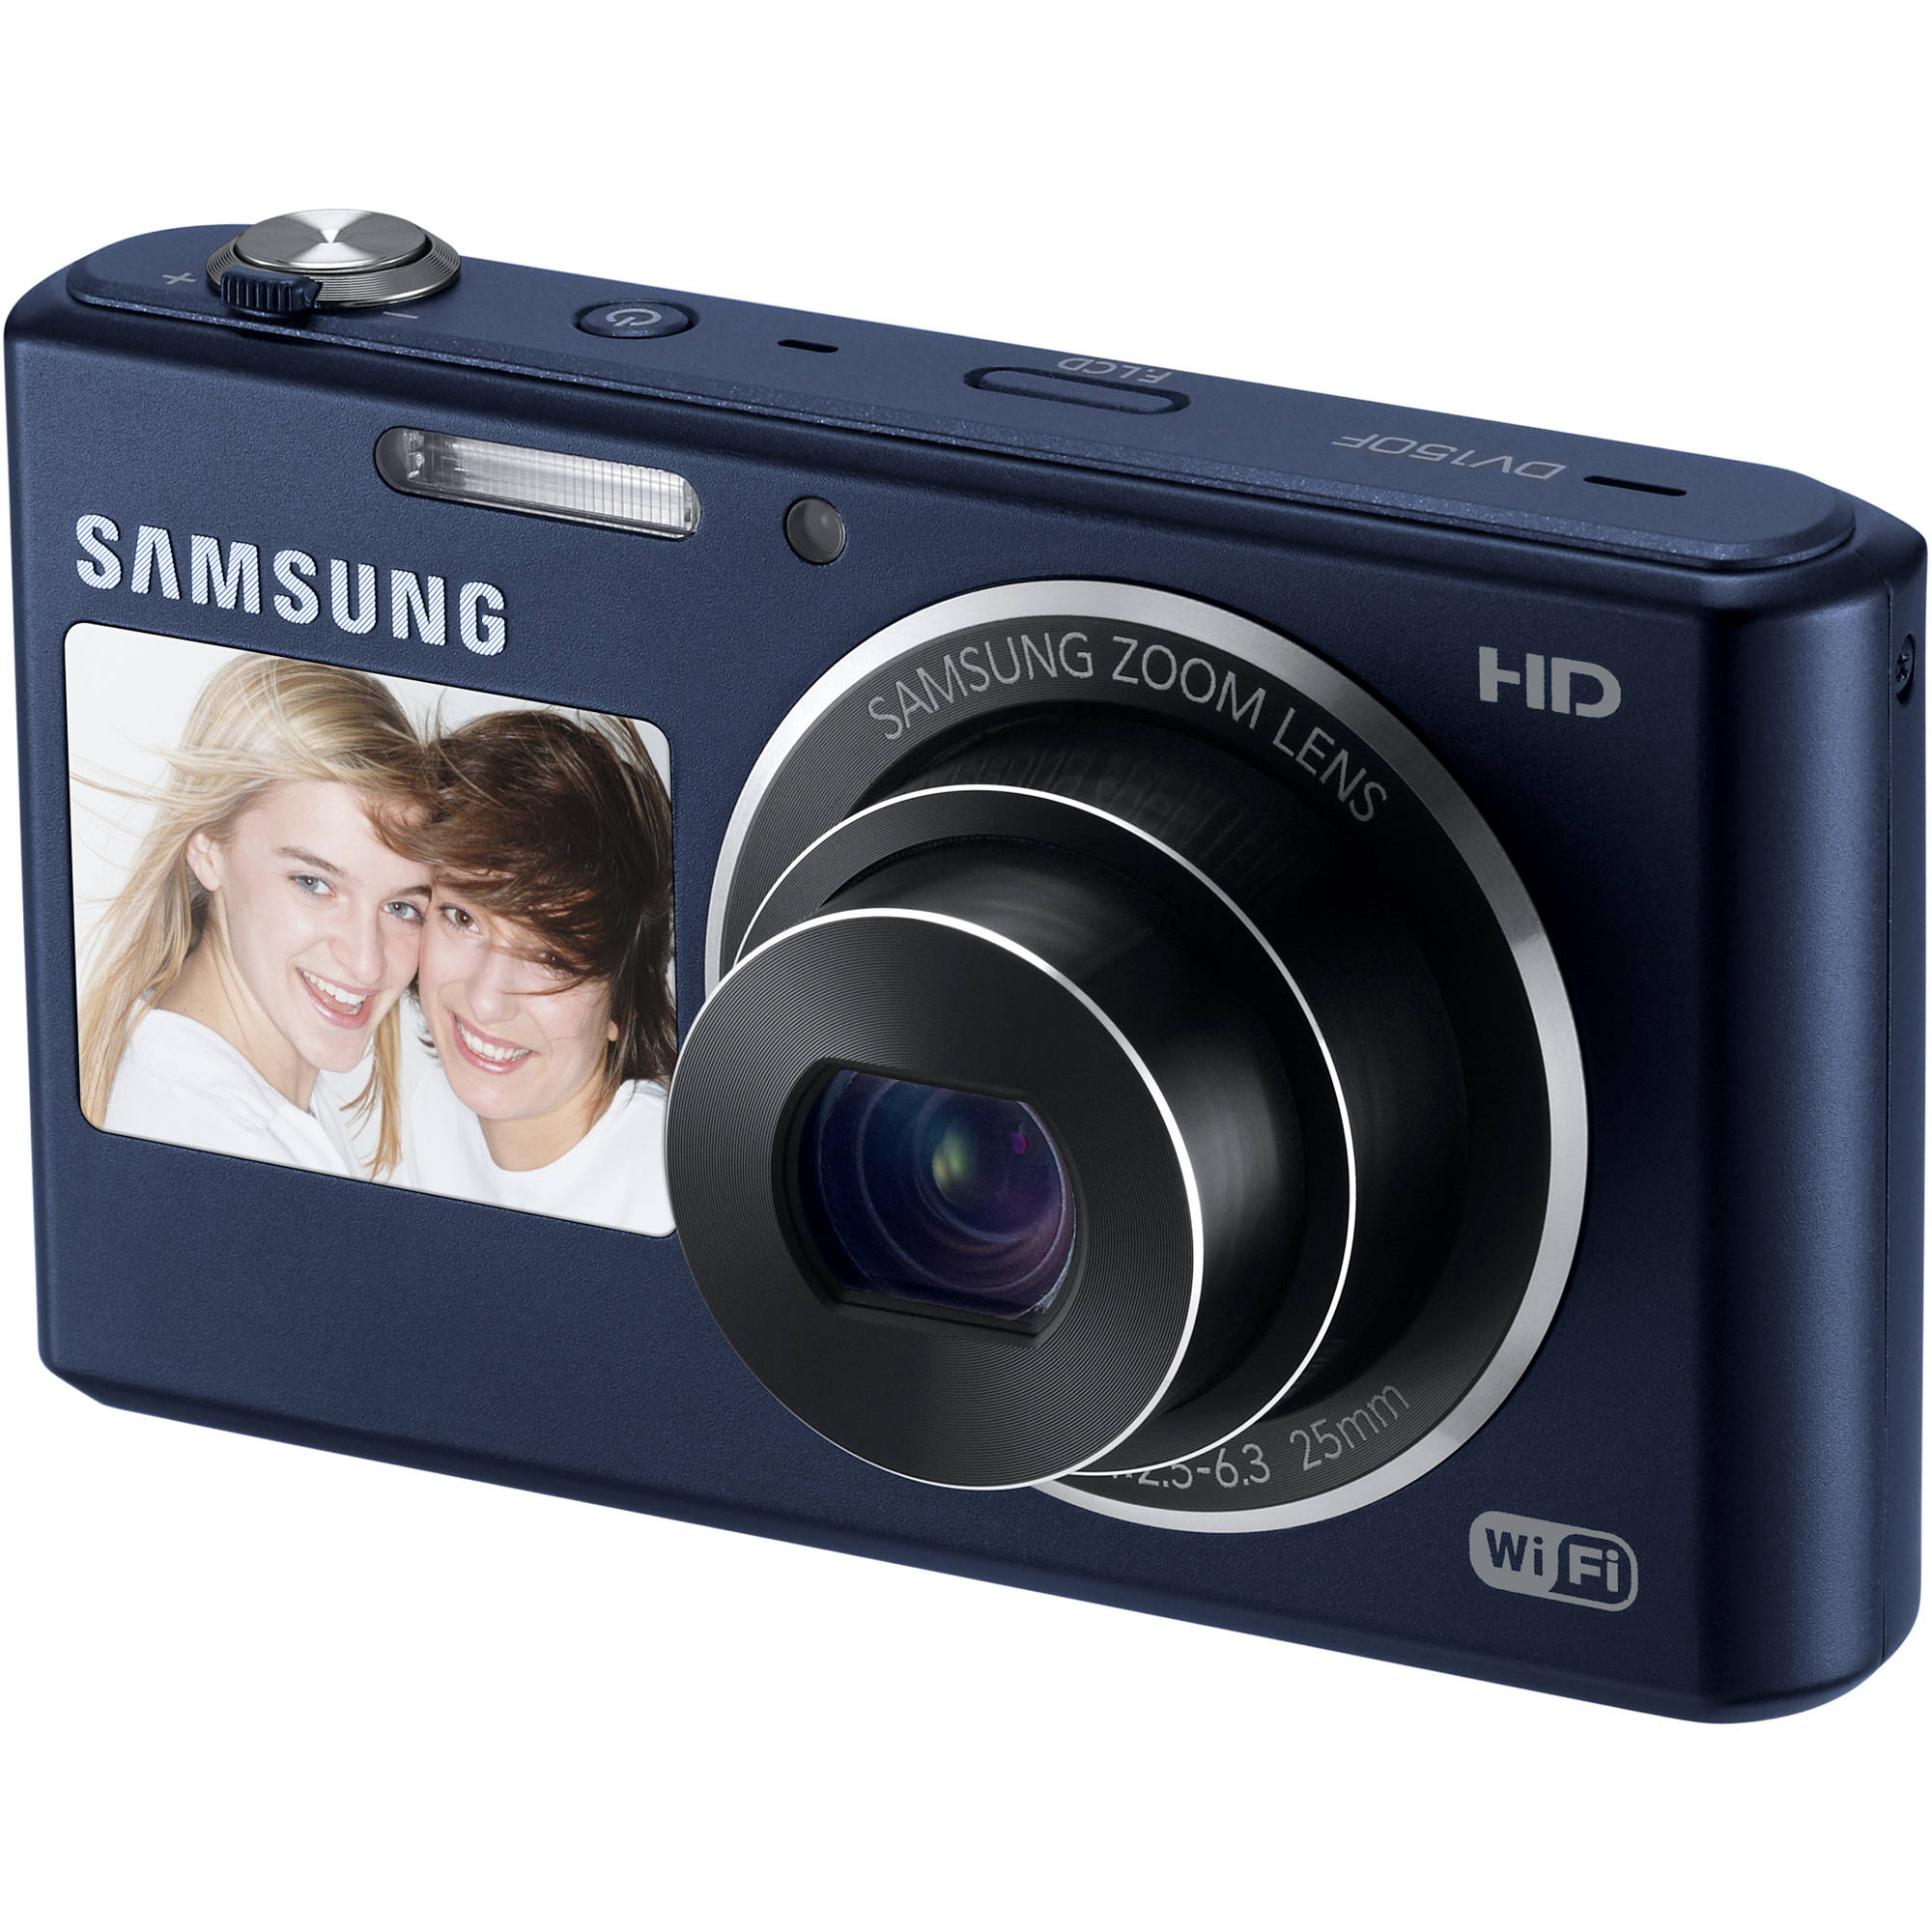 samsung dv150f dual view smart digital camera ec dv150fbpbus b h rh bhphotovideo com Wildview Game Camera Manual Konica Minolta Digital Camera Manual